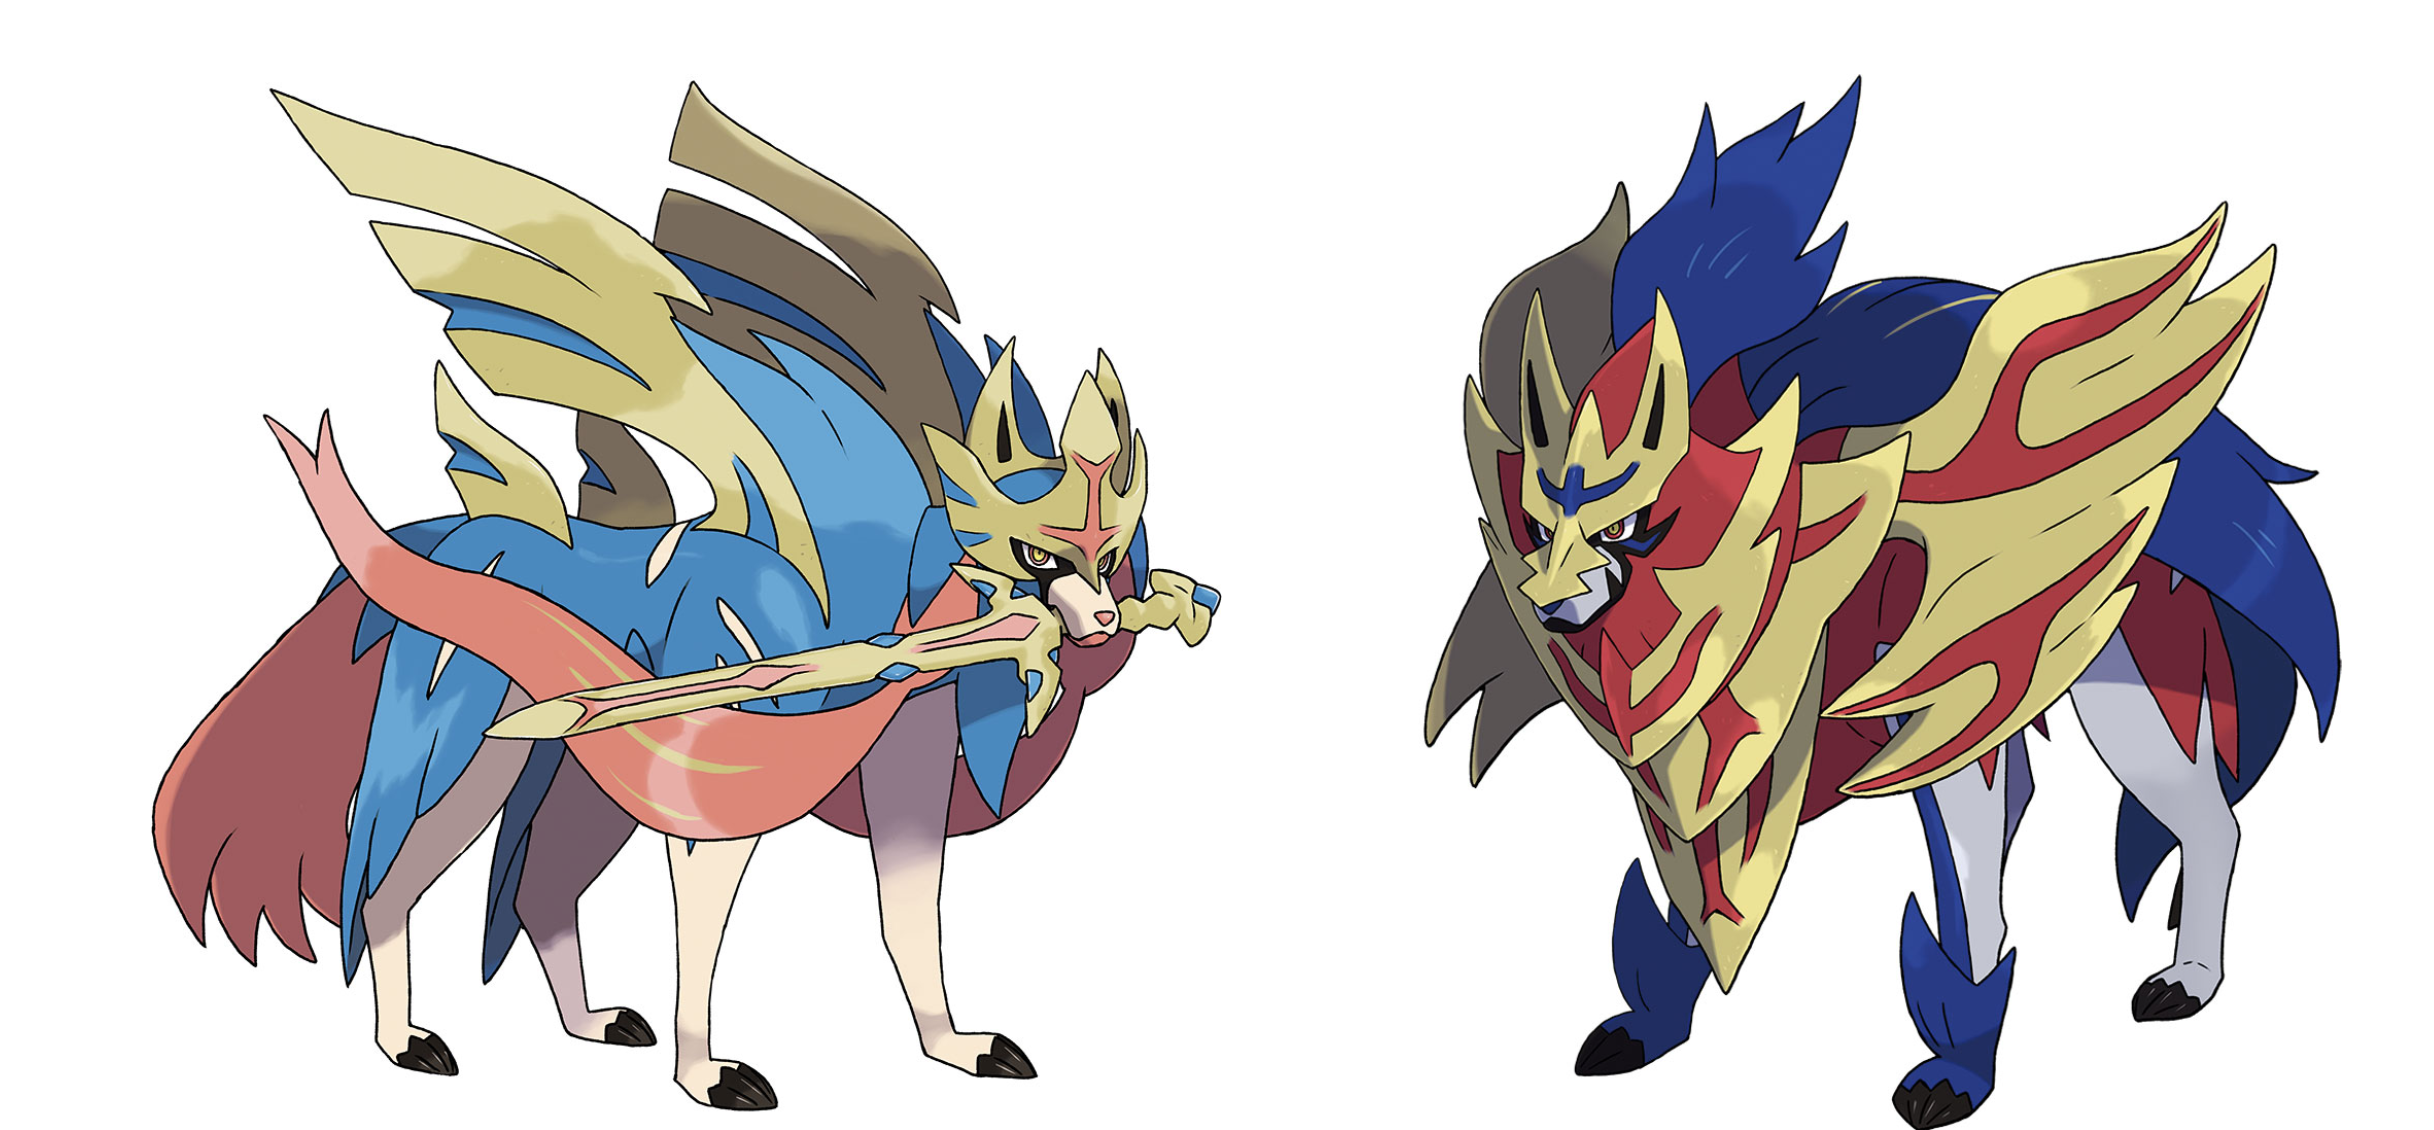 Zacian and Zamazenta